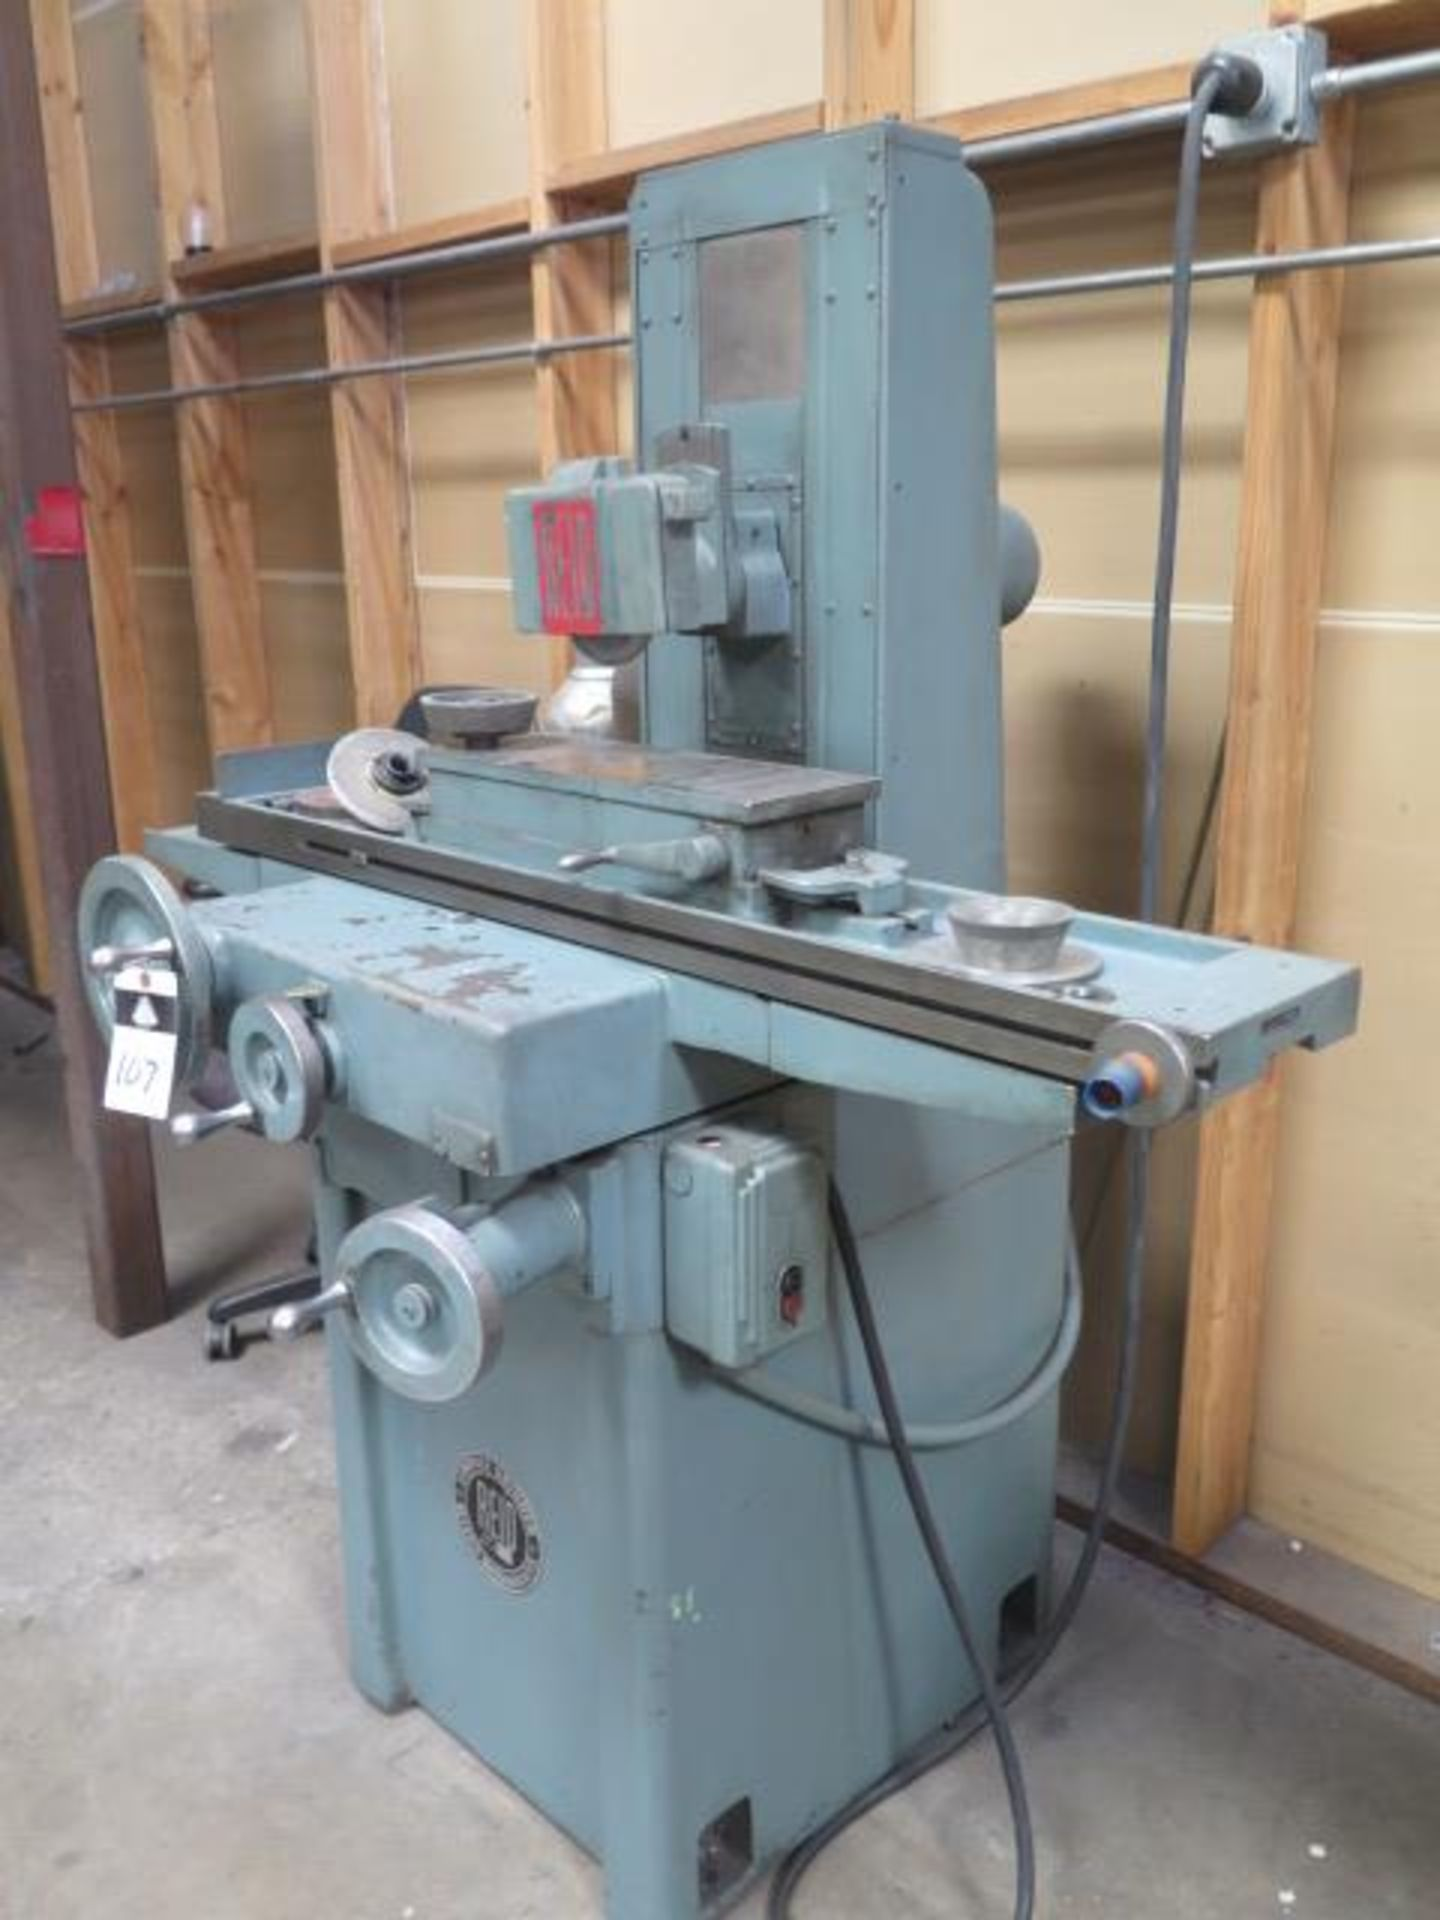 """Reid 618HA 6"""" x 18"""" Surface Grinder s/n 14554 w/ Magnetic Chuck (SOLD AS-IS - NO WARRANTY) - Image 2 of 9"""